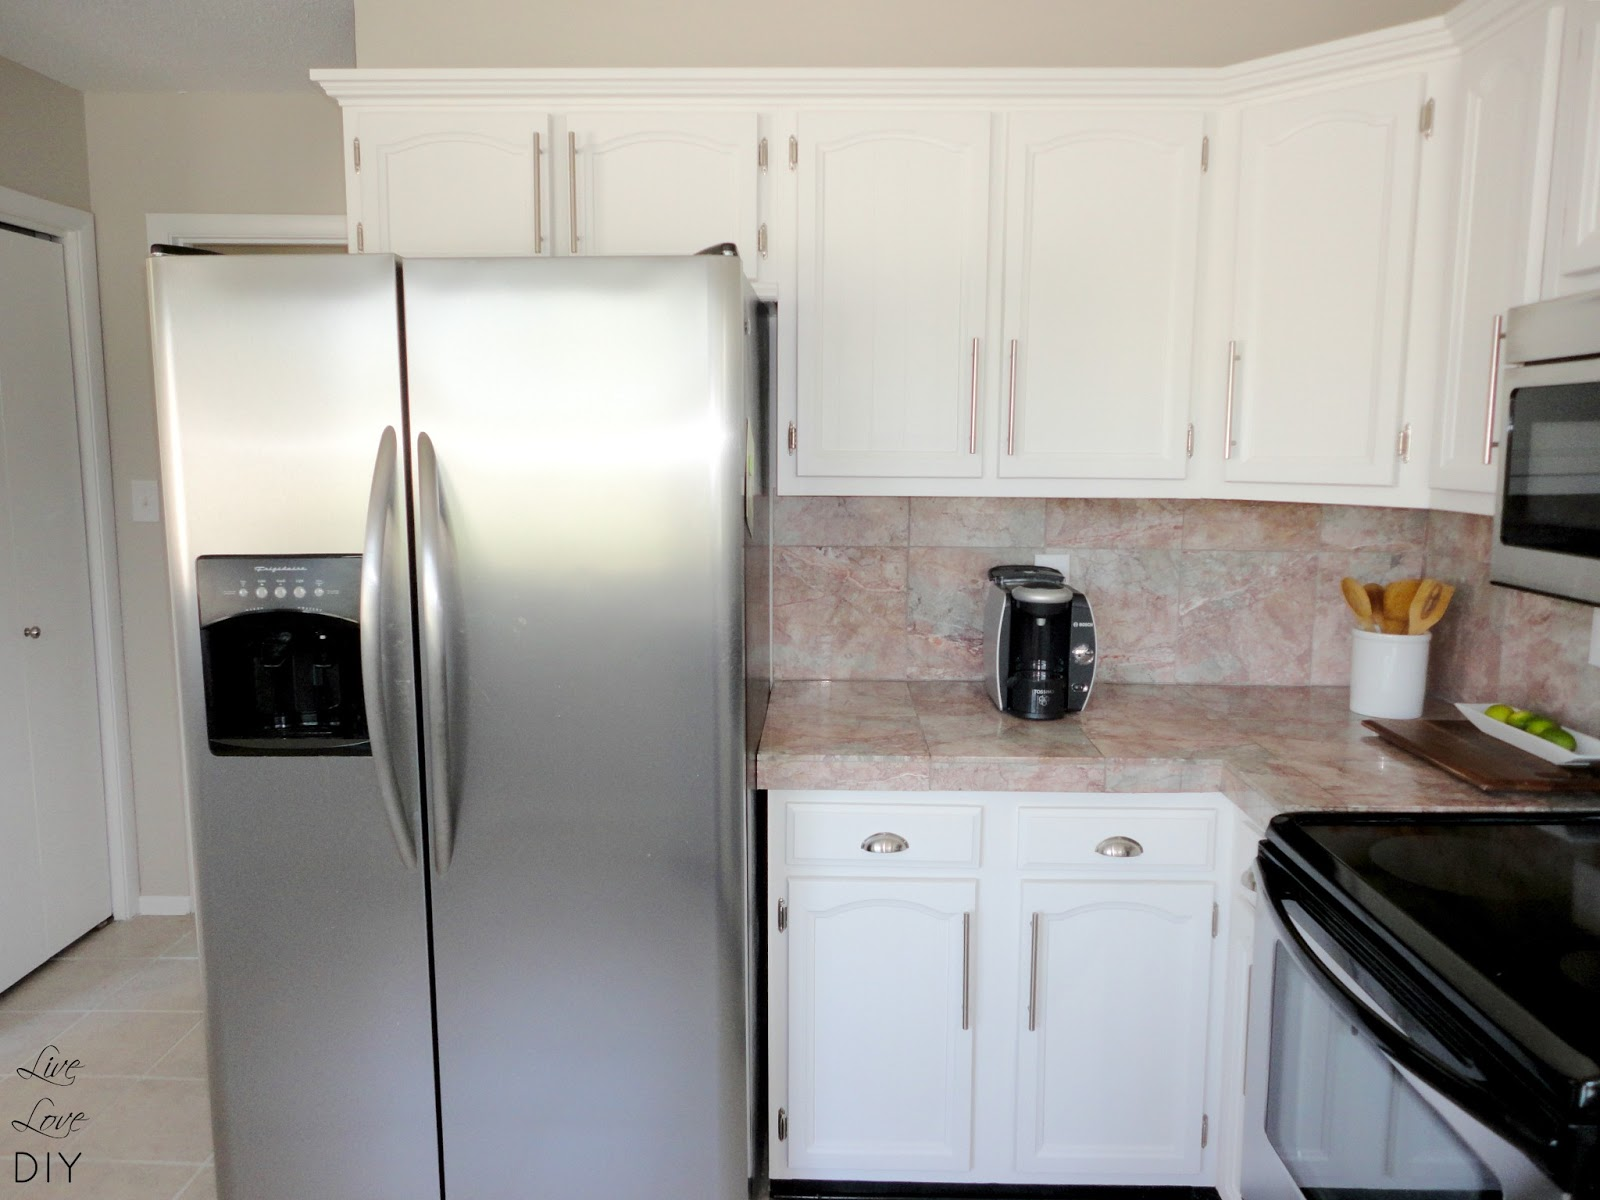 spray painting kitchen cabinets white how do you clean kitchen cabinets before painting 26532